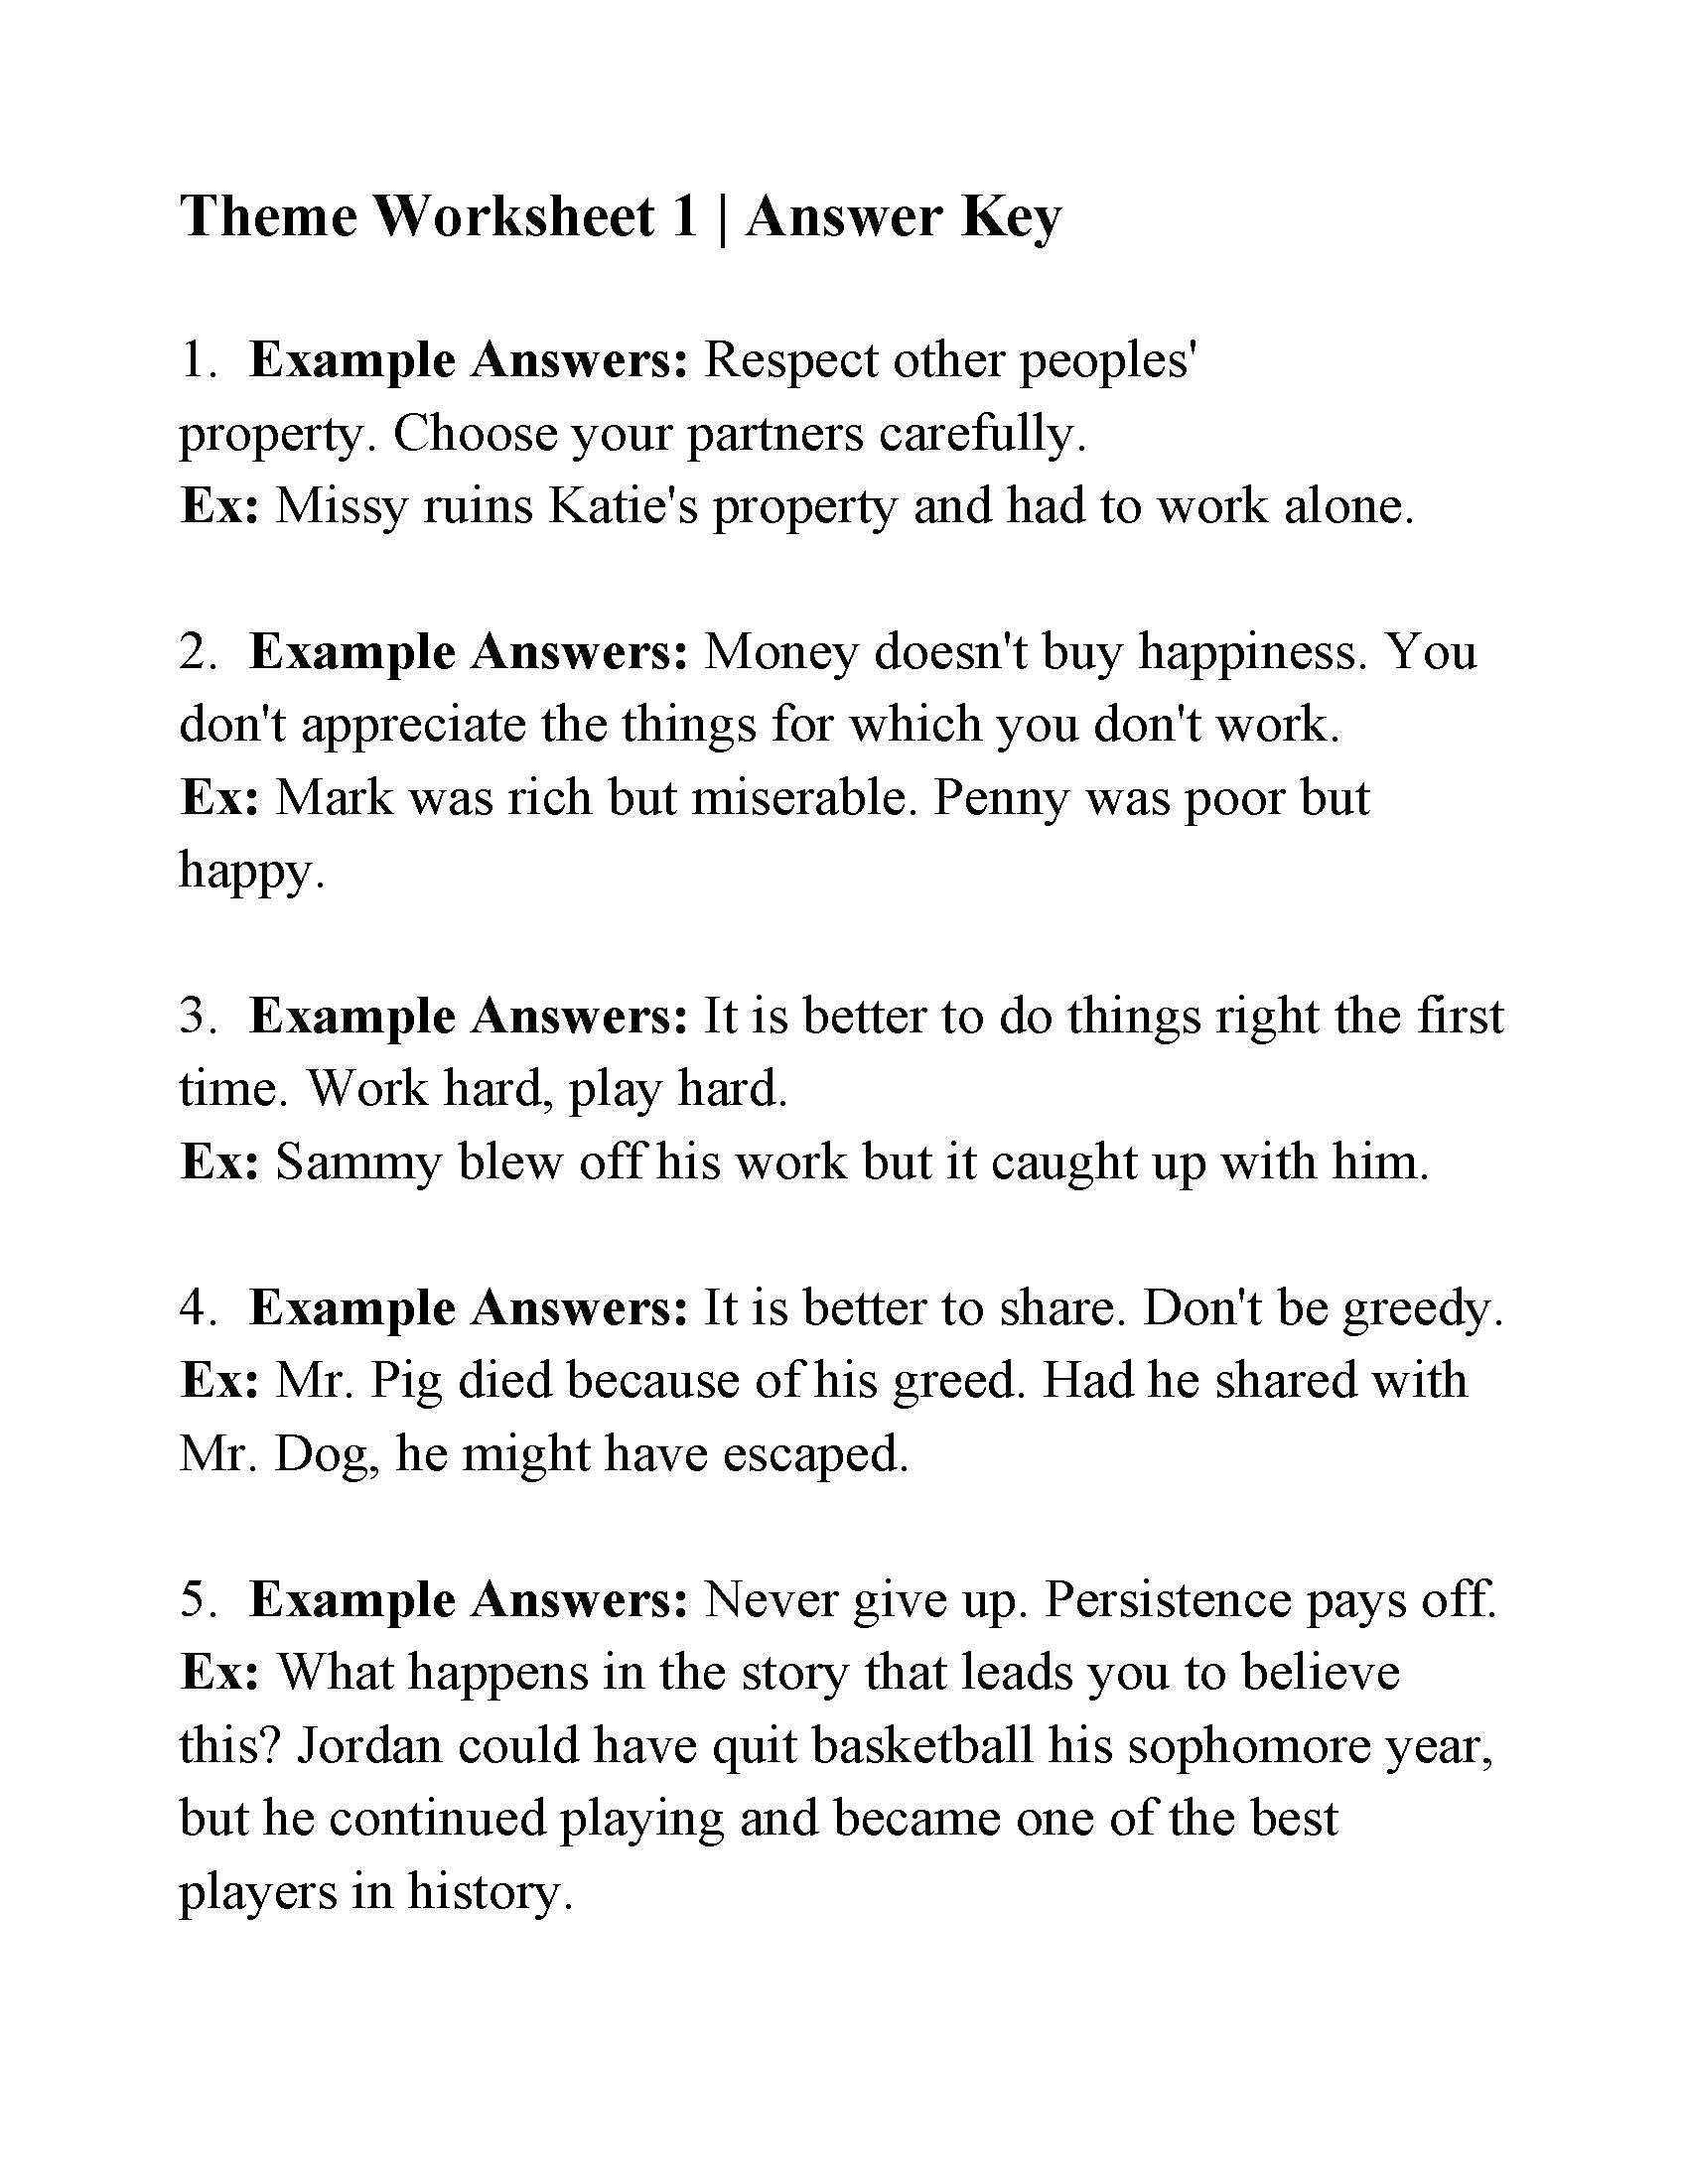 This is the answer key for the Theme Worksheet 1 ...